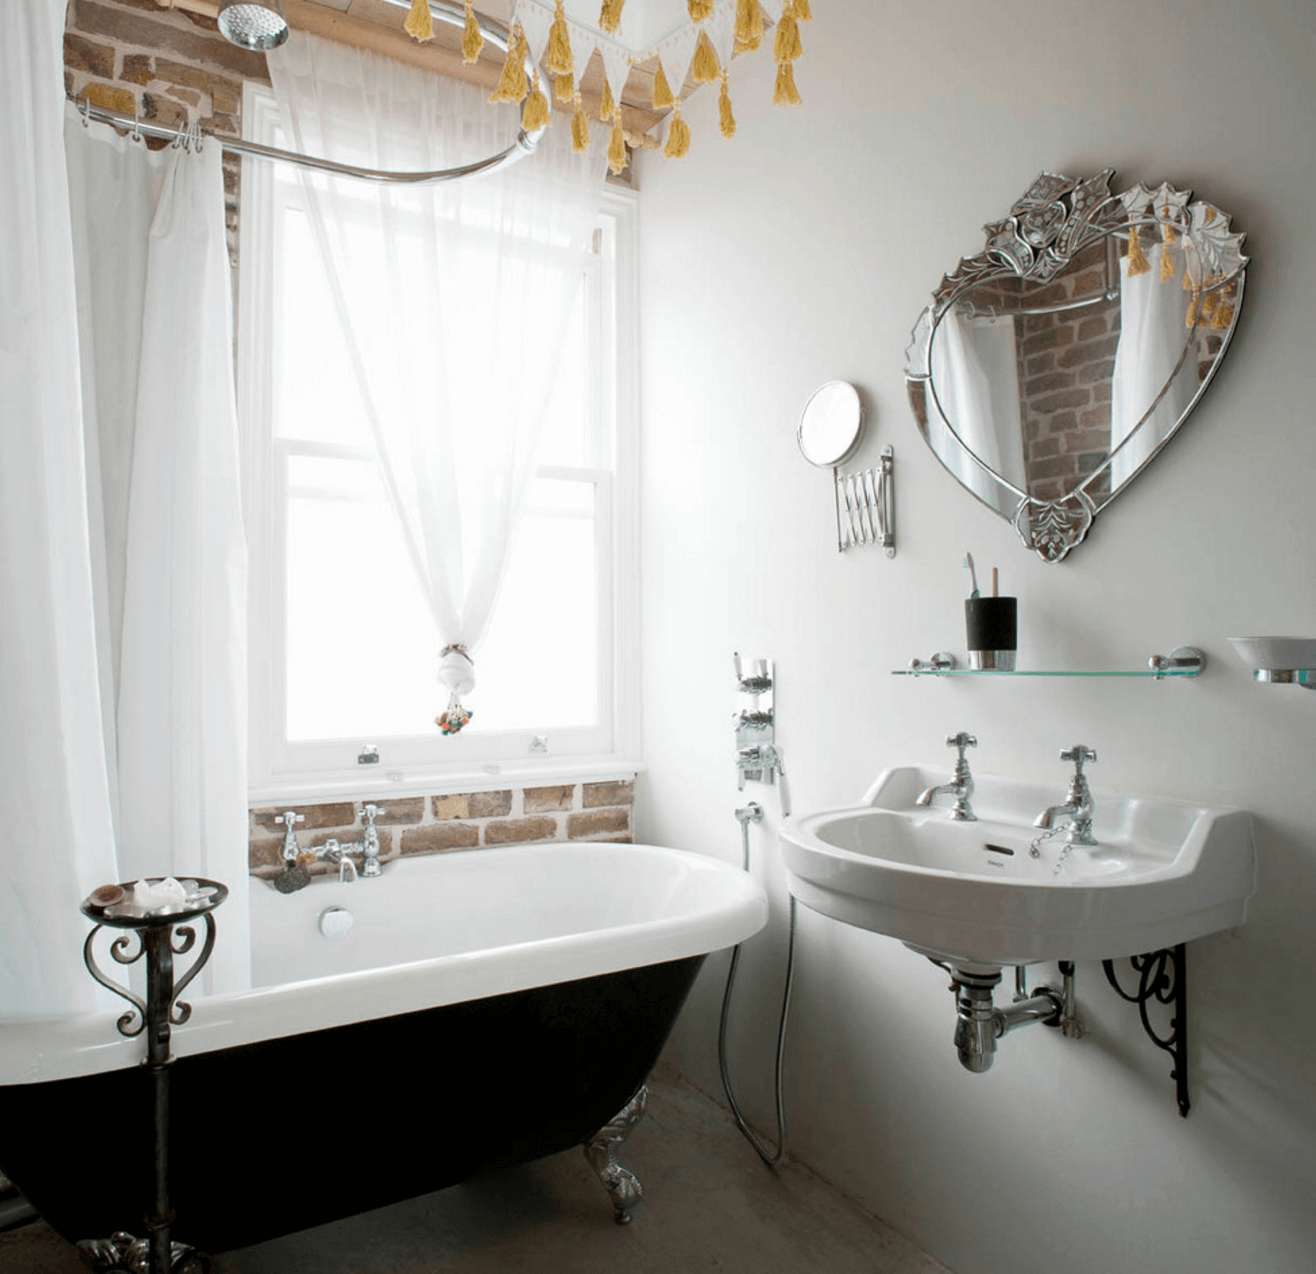 38 Bathroom Mirror Ideas to Reflect Your Style | Master bath ...